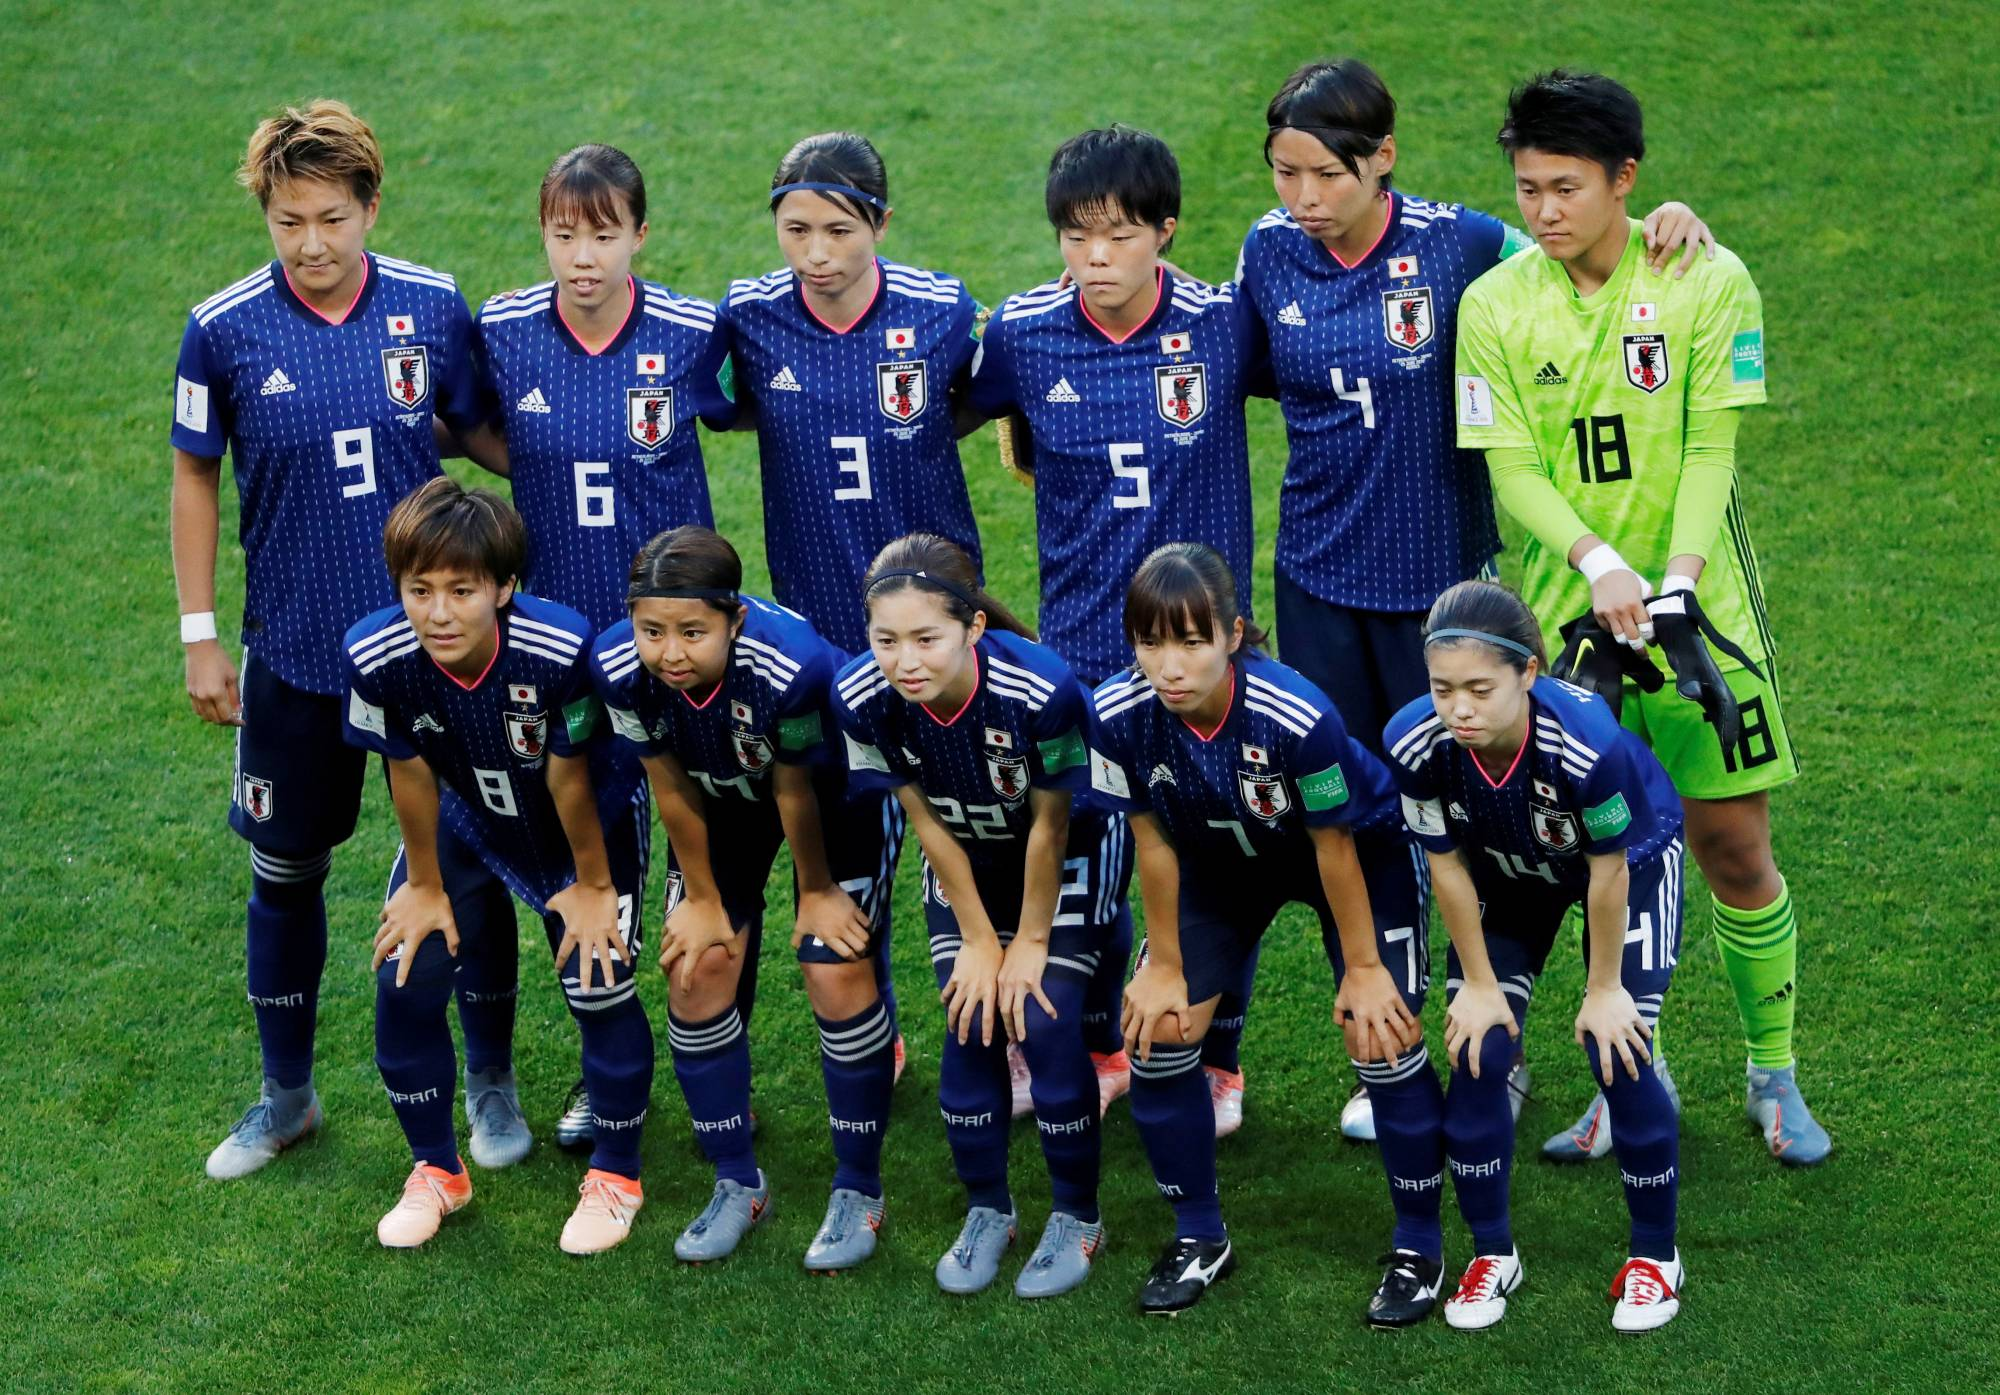 Nadeshiko Japan players pose for a team photo prior to their match against the Netherlands during the 2019 Women's World Cup in Rennes, France.   REUTERS